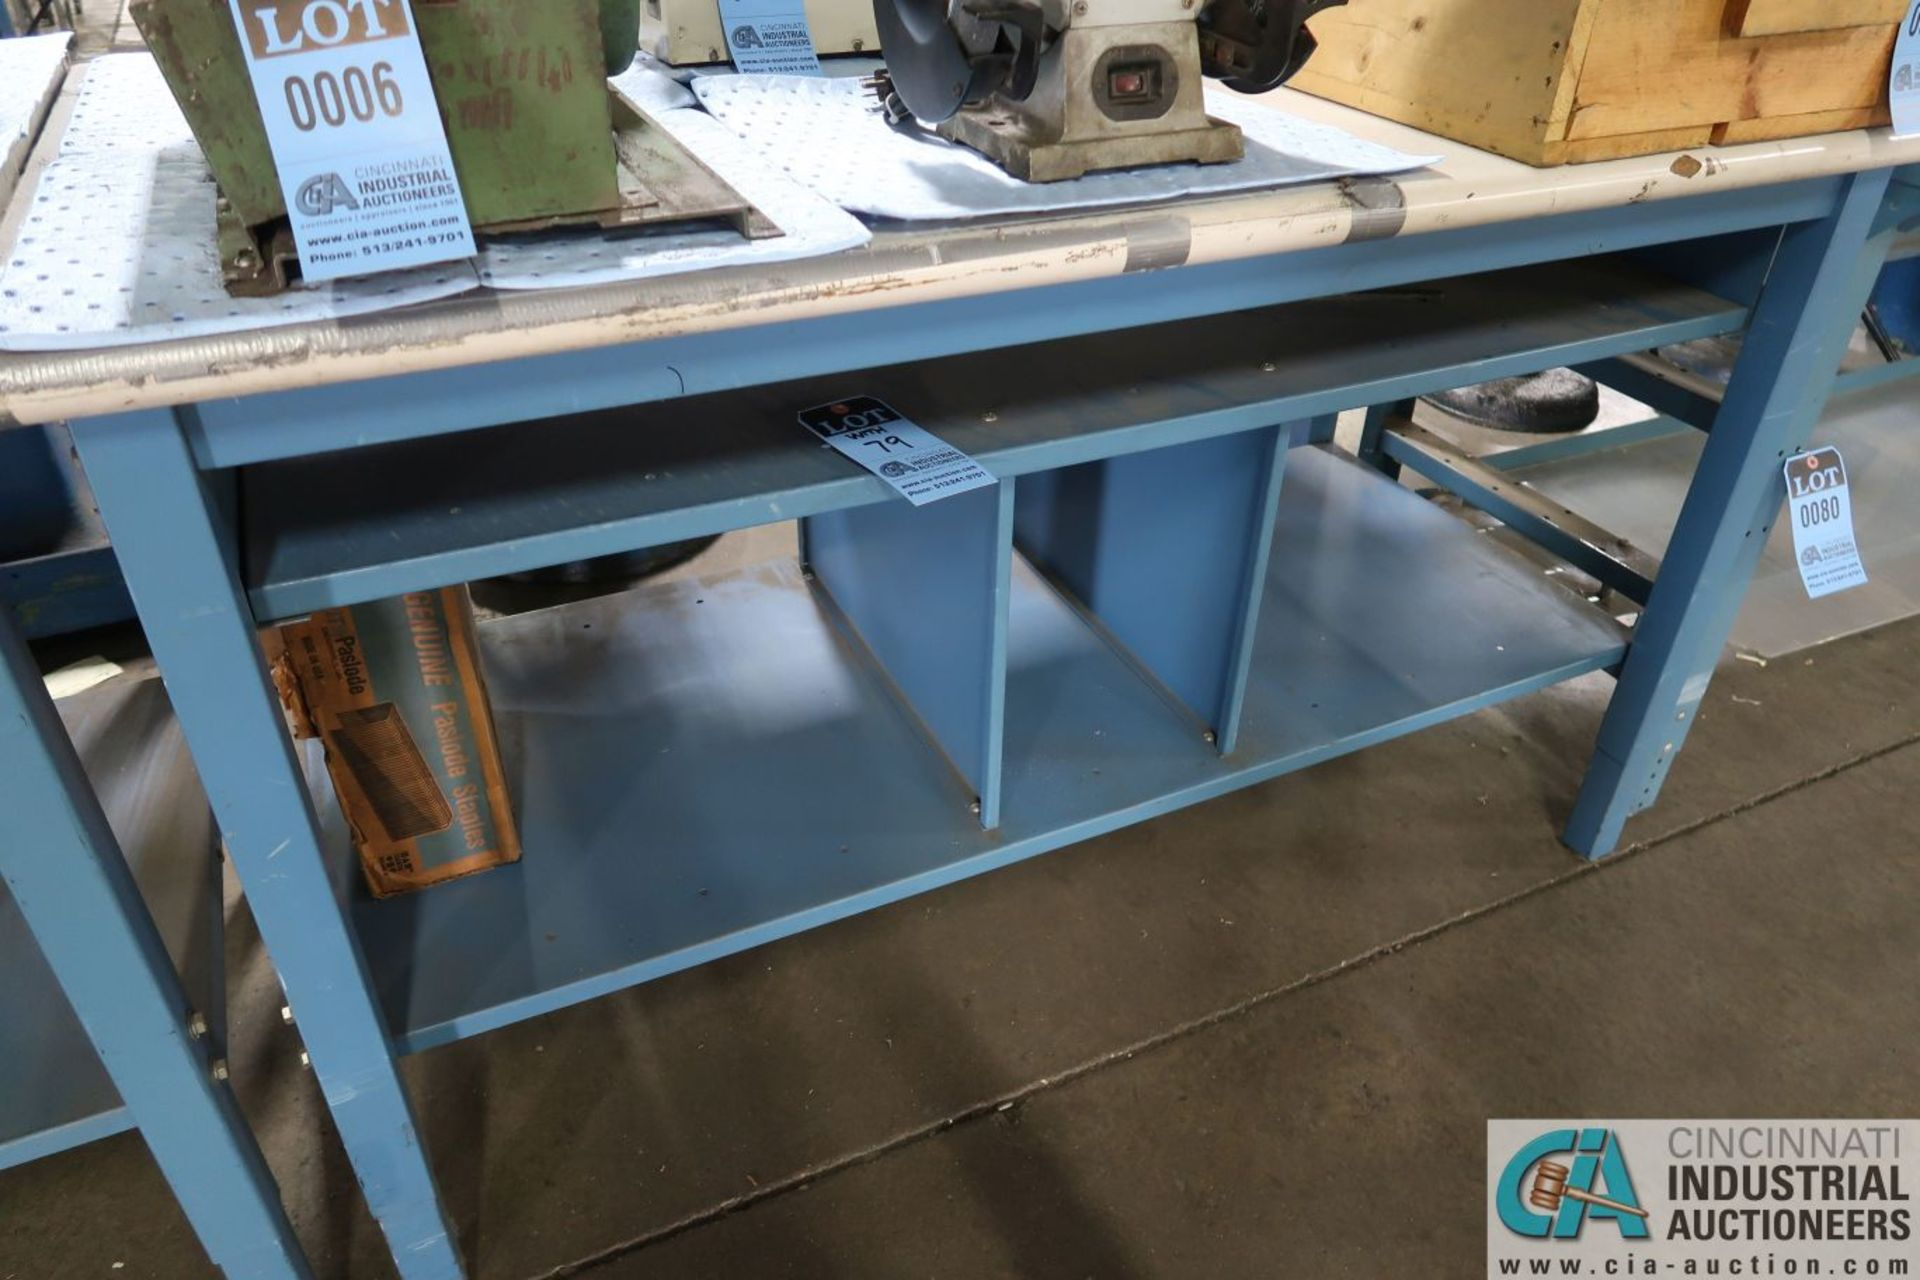 """ADJUSTABLE HEIGHT STEEL FRAME LAMINATED TOP WORK STATIONS, (1) 30"""" X 72"""" AND (1) 30"""" X 60"""" - Image 3 of 3"""